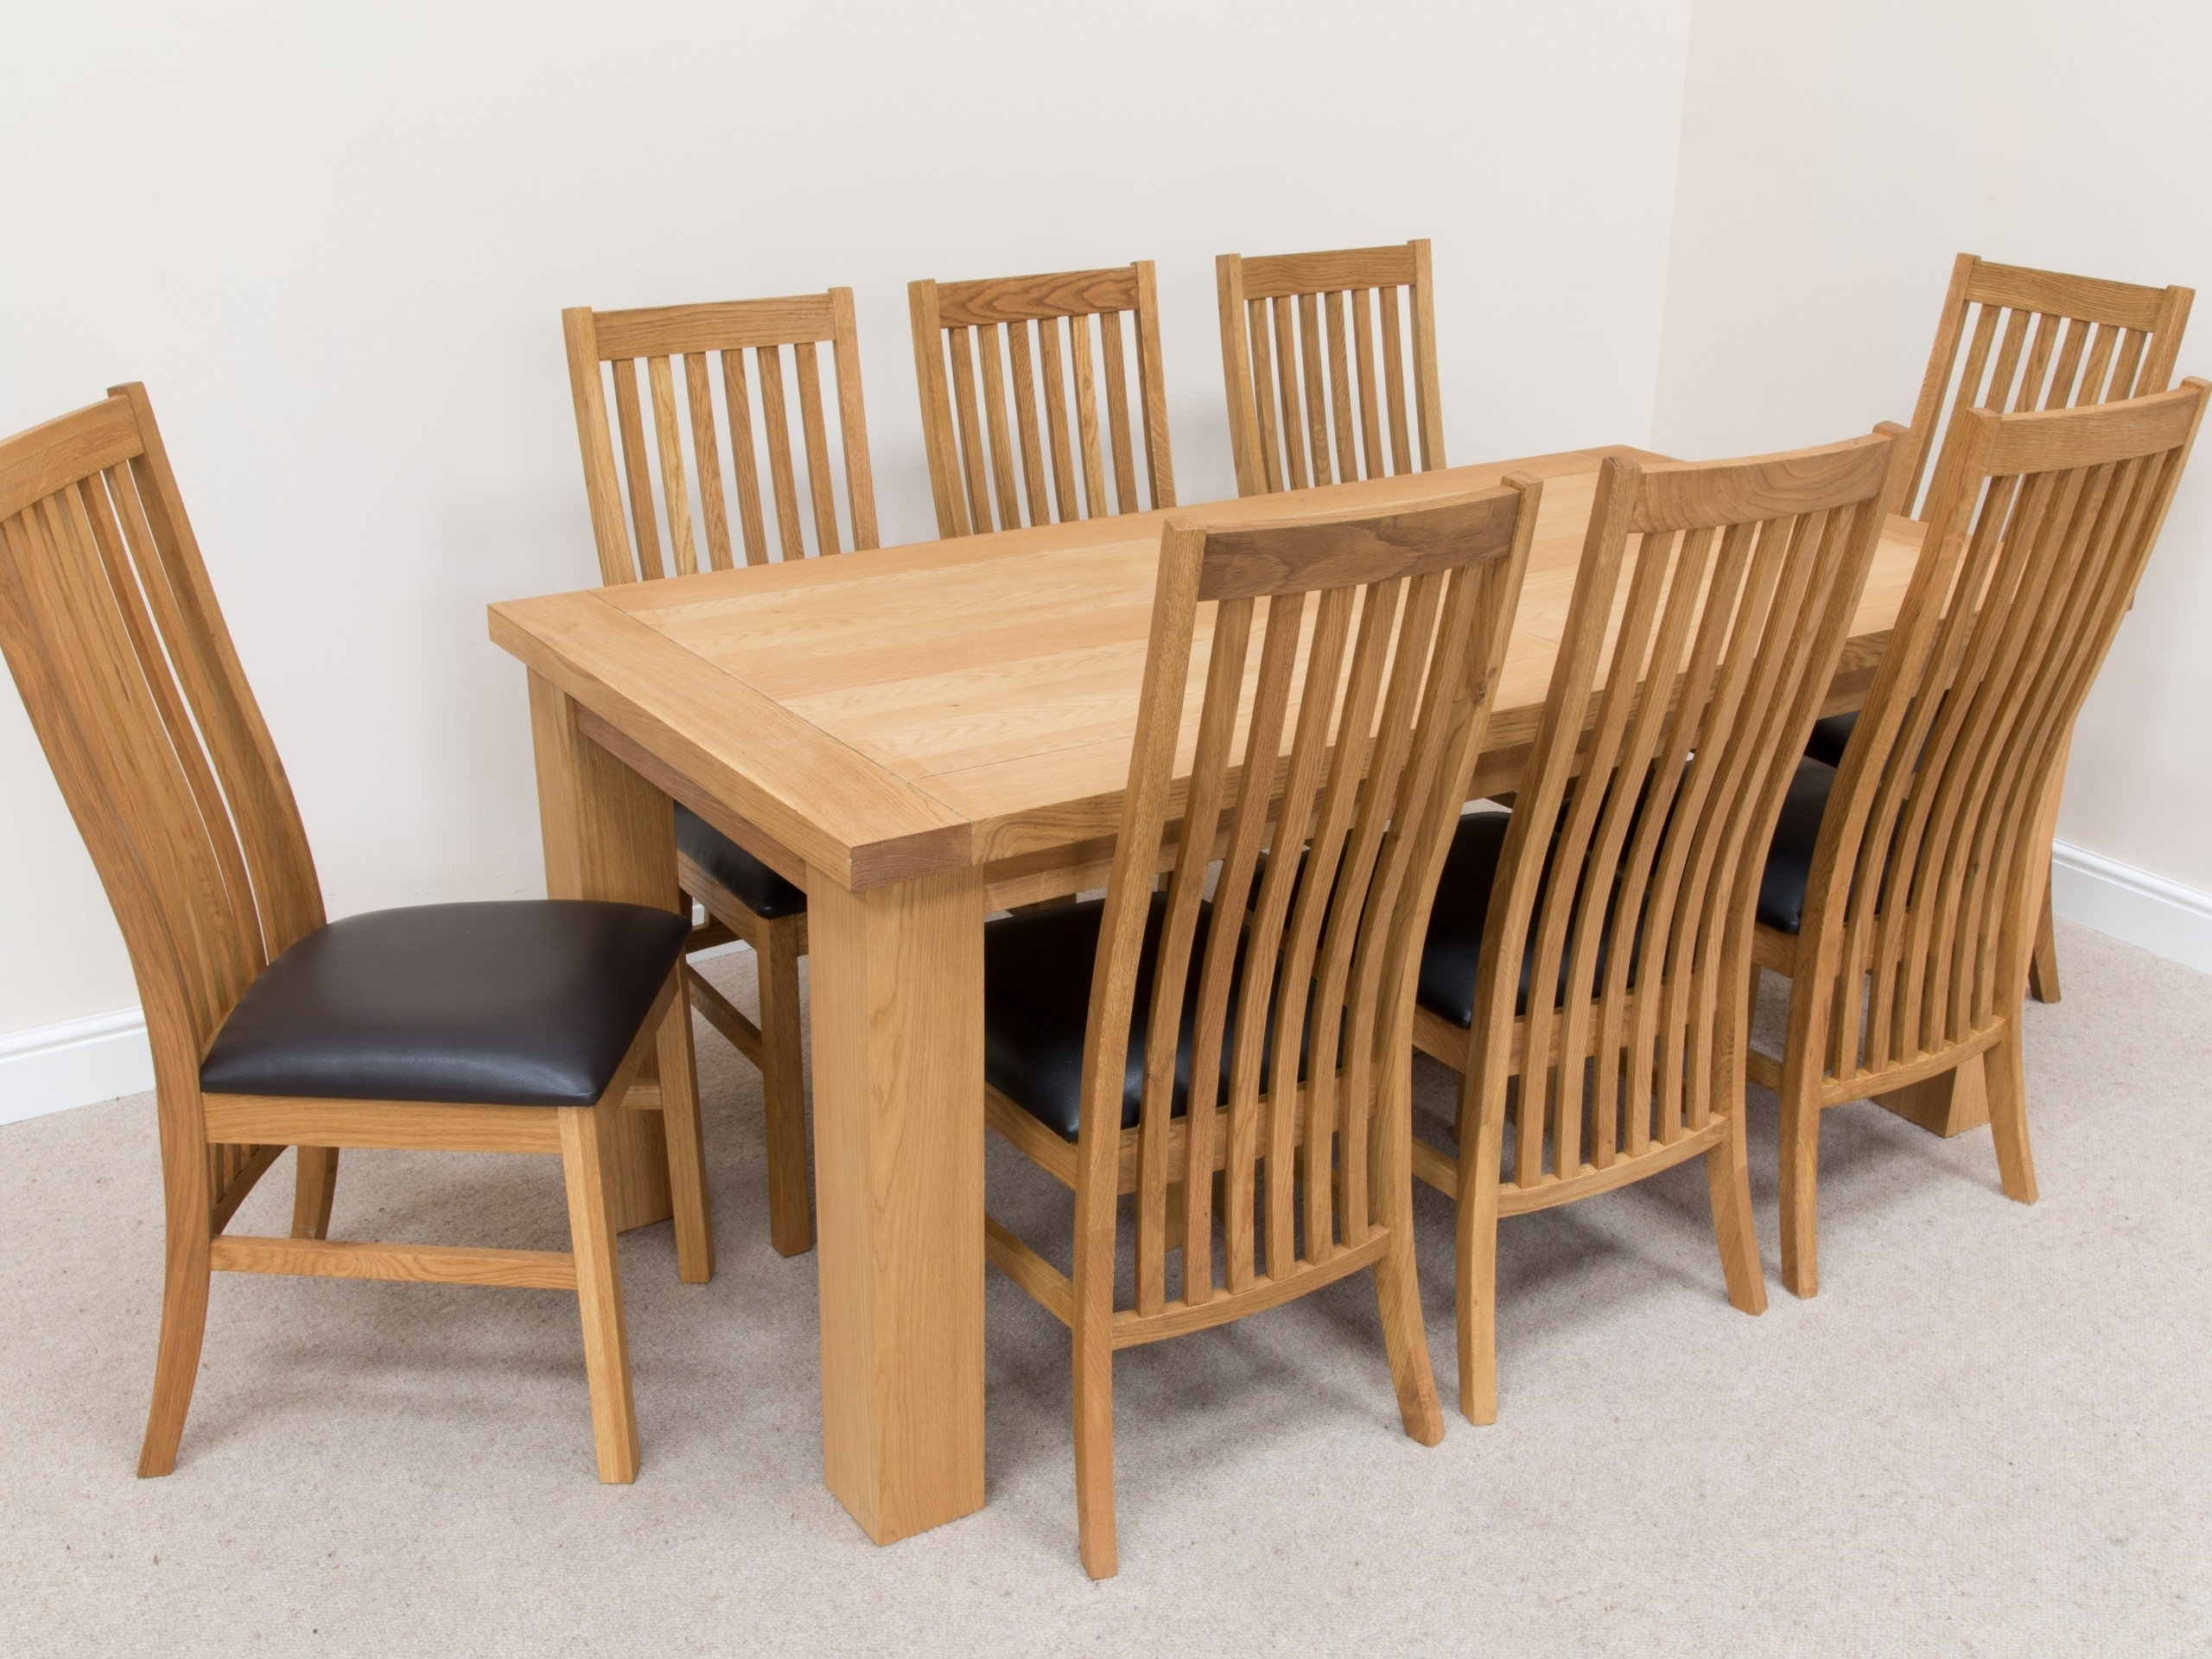 Popular 26 Dining Table Set For 8, Marina Marble Dining Table With 8 Chairs Regarding Sheesham Dining Tables 8 Chairs (View 4 of 25)